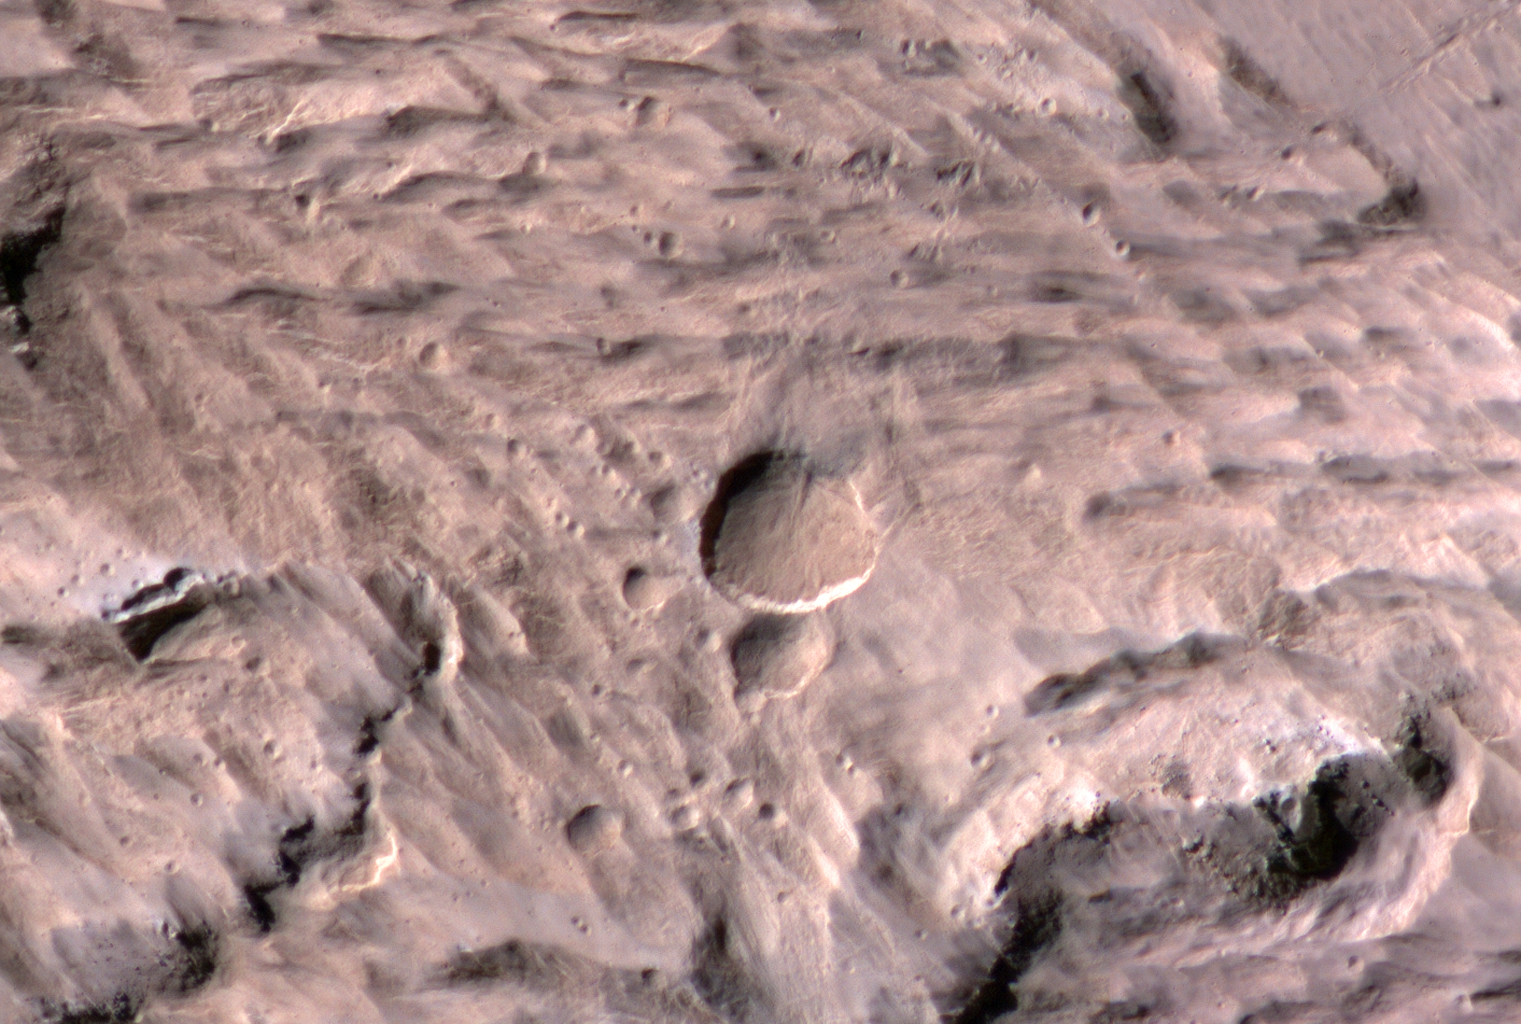 The largest crater associated with a March 2012 impact on Mars has many smaller craters around it, revealed in this image from the High Resolution Imaging Science Experiment (HiRISE) camera on NASA's Mars Reconnaissance Orbiter.